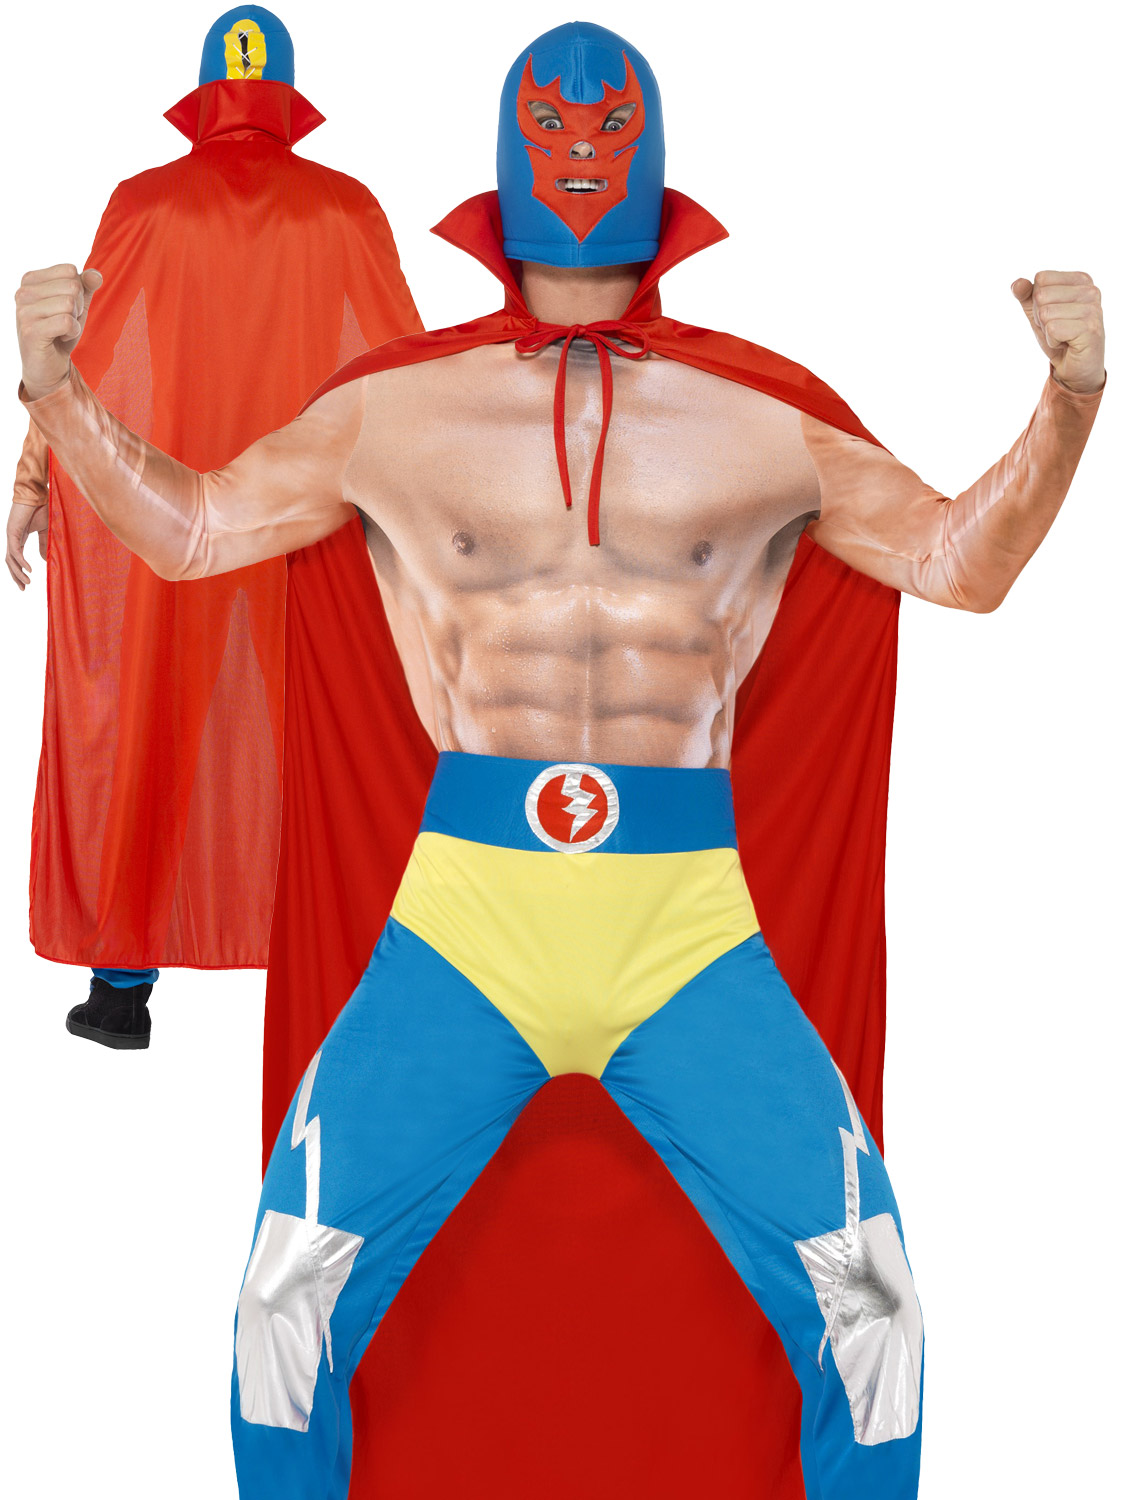 Mens mexican wrestler costume adults sports fighter fancy dress wwe transform yourself into a wwe wrestler with this mens mexican wrestle costume solutioingenieria